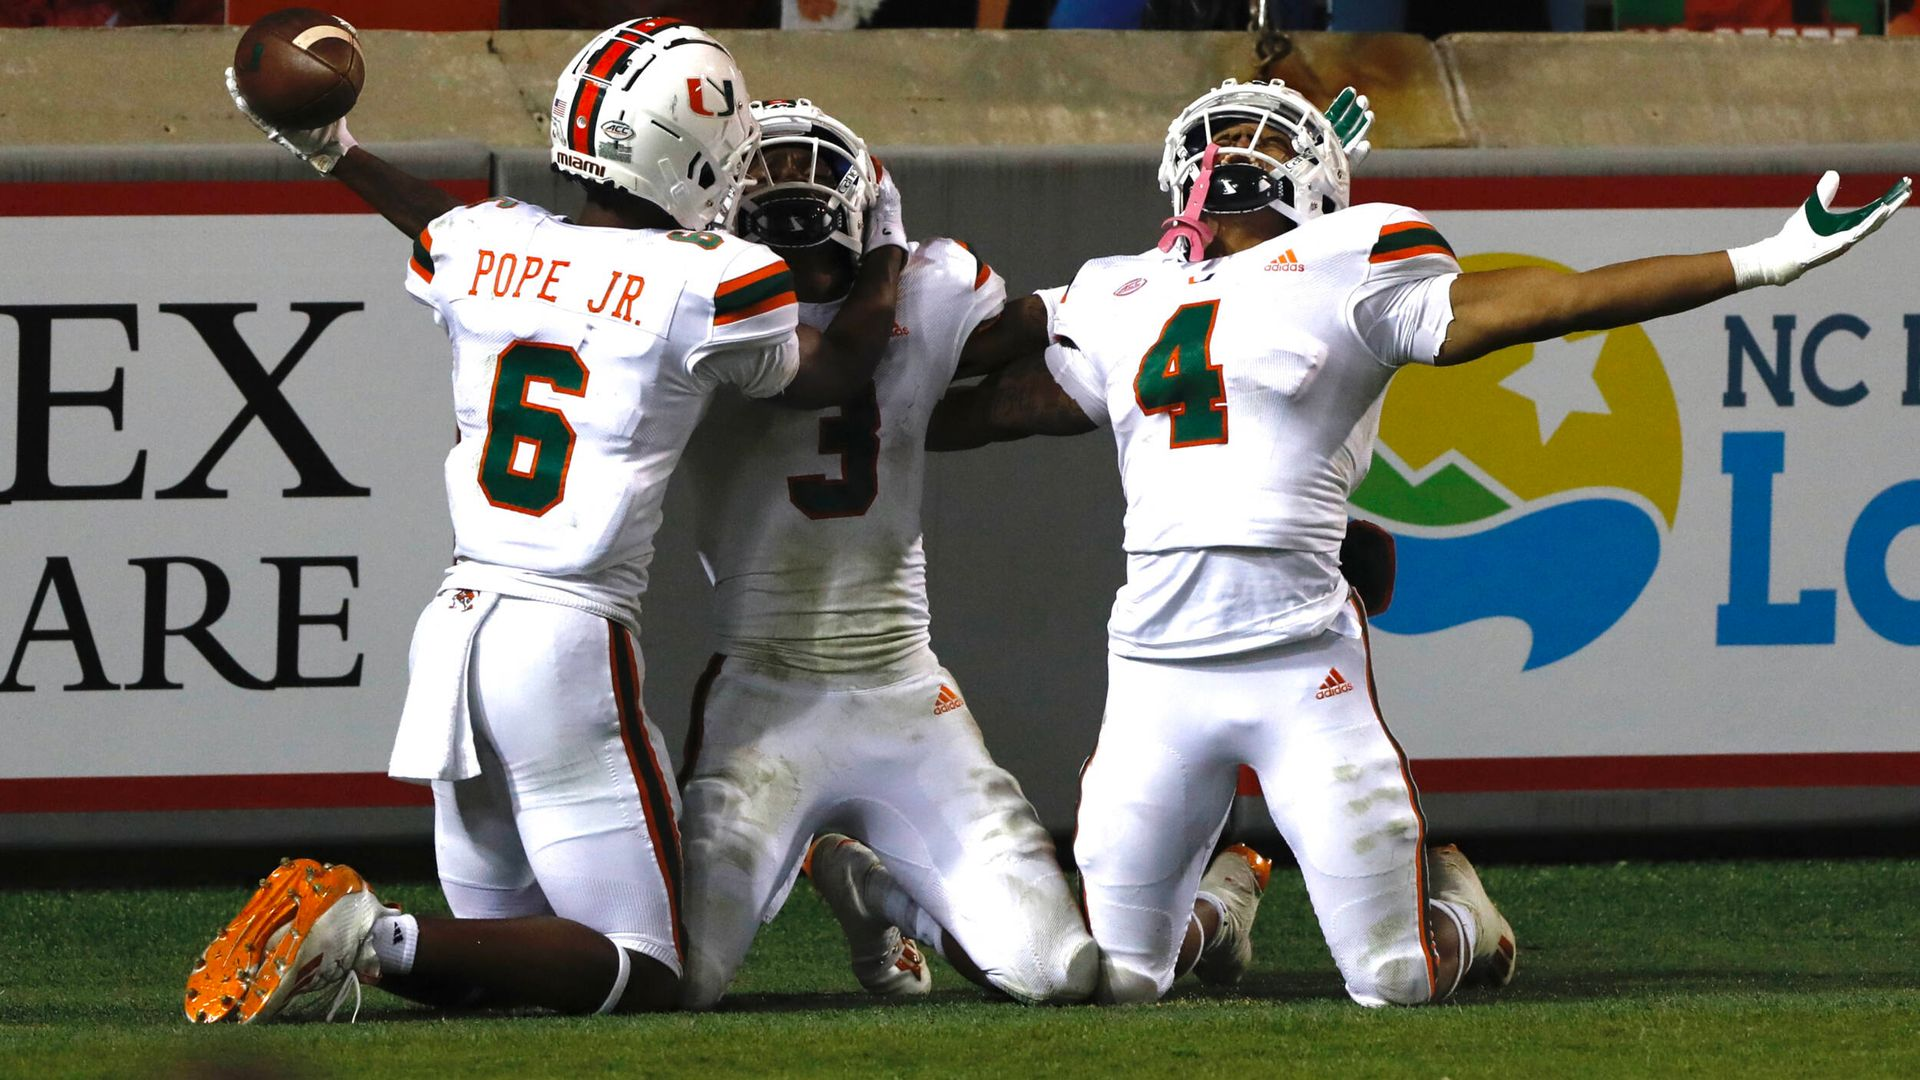 Hurricanes Ranked No. 9 in Both Polls